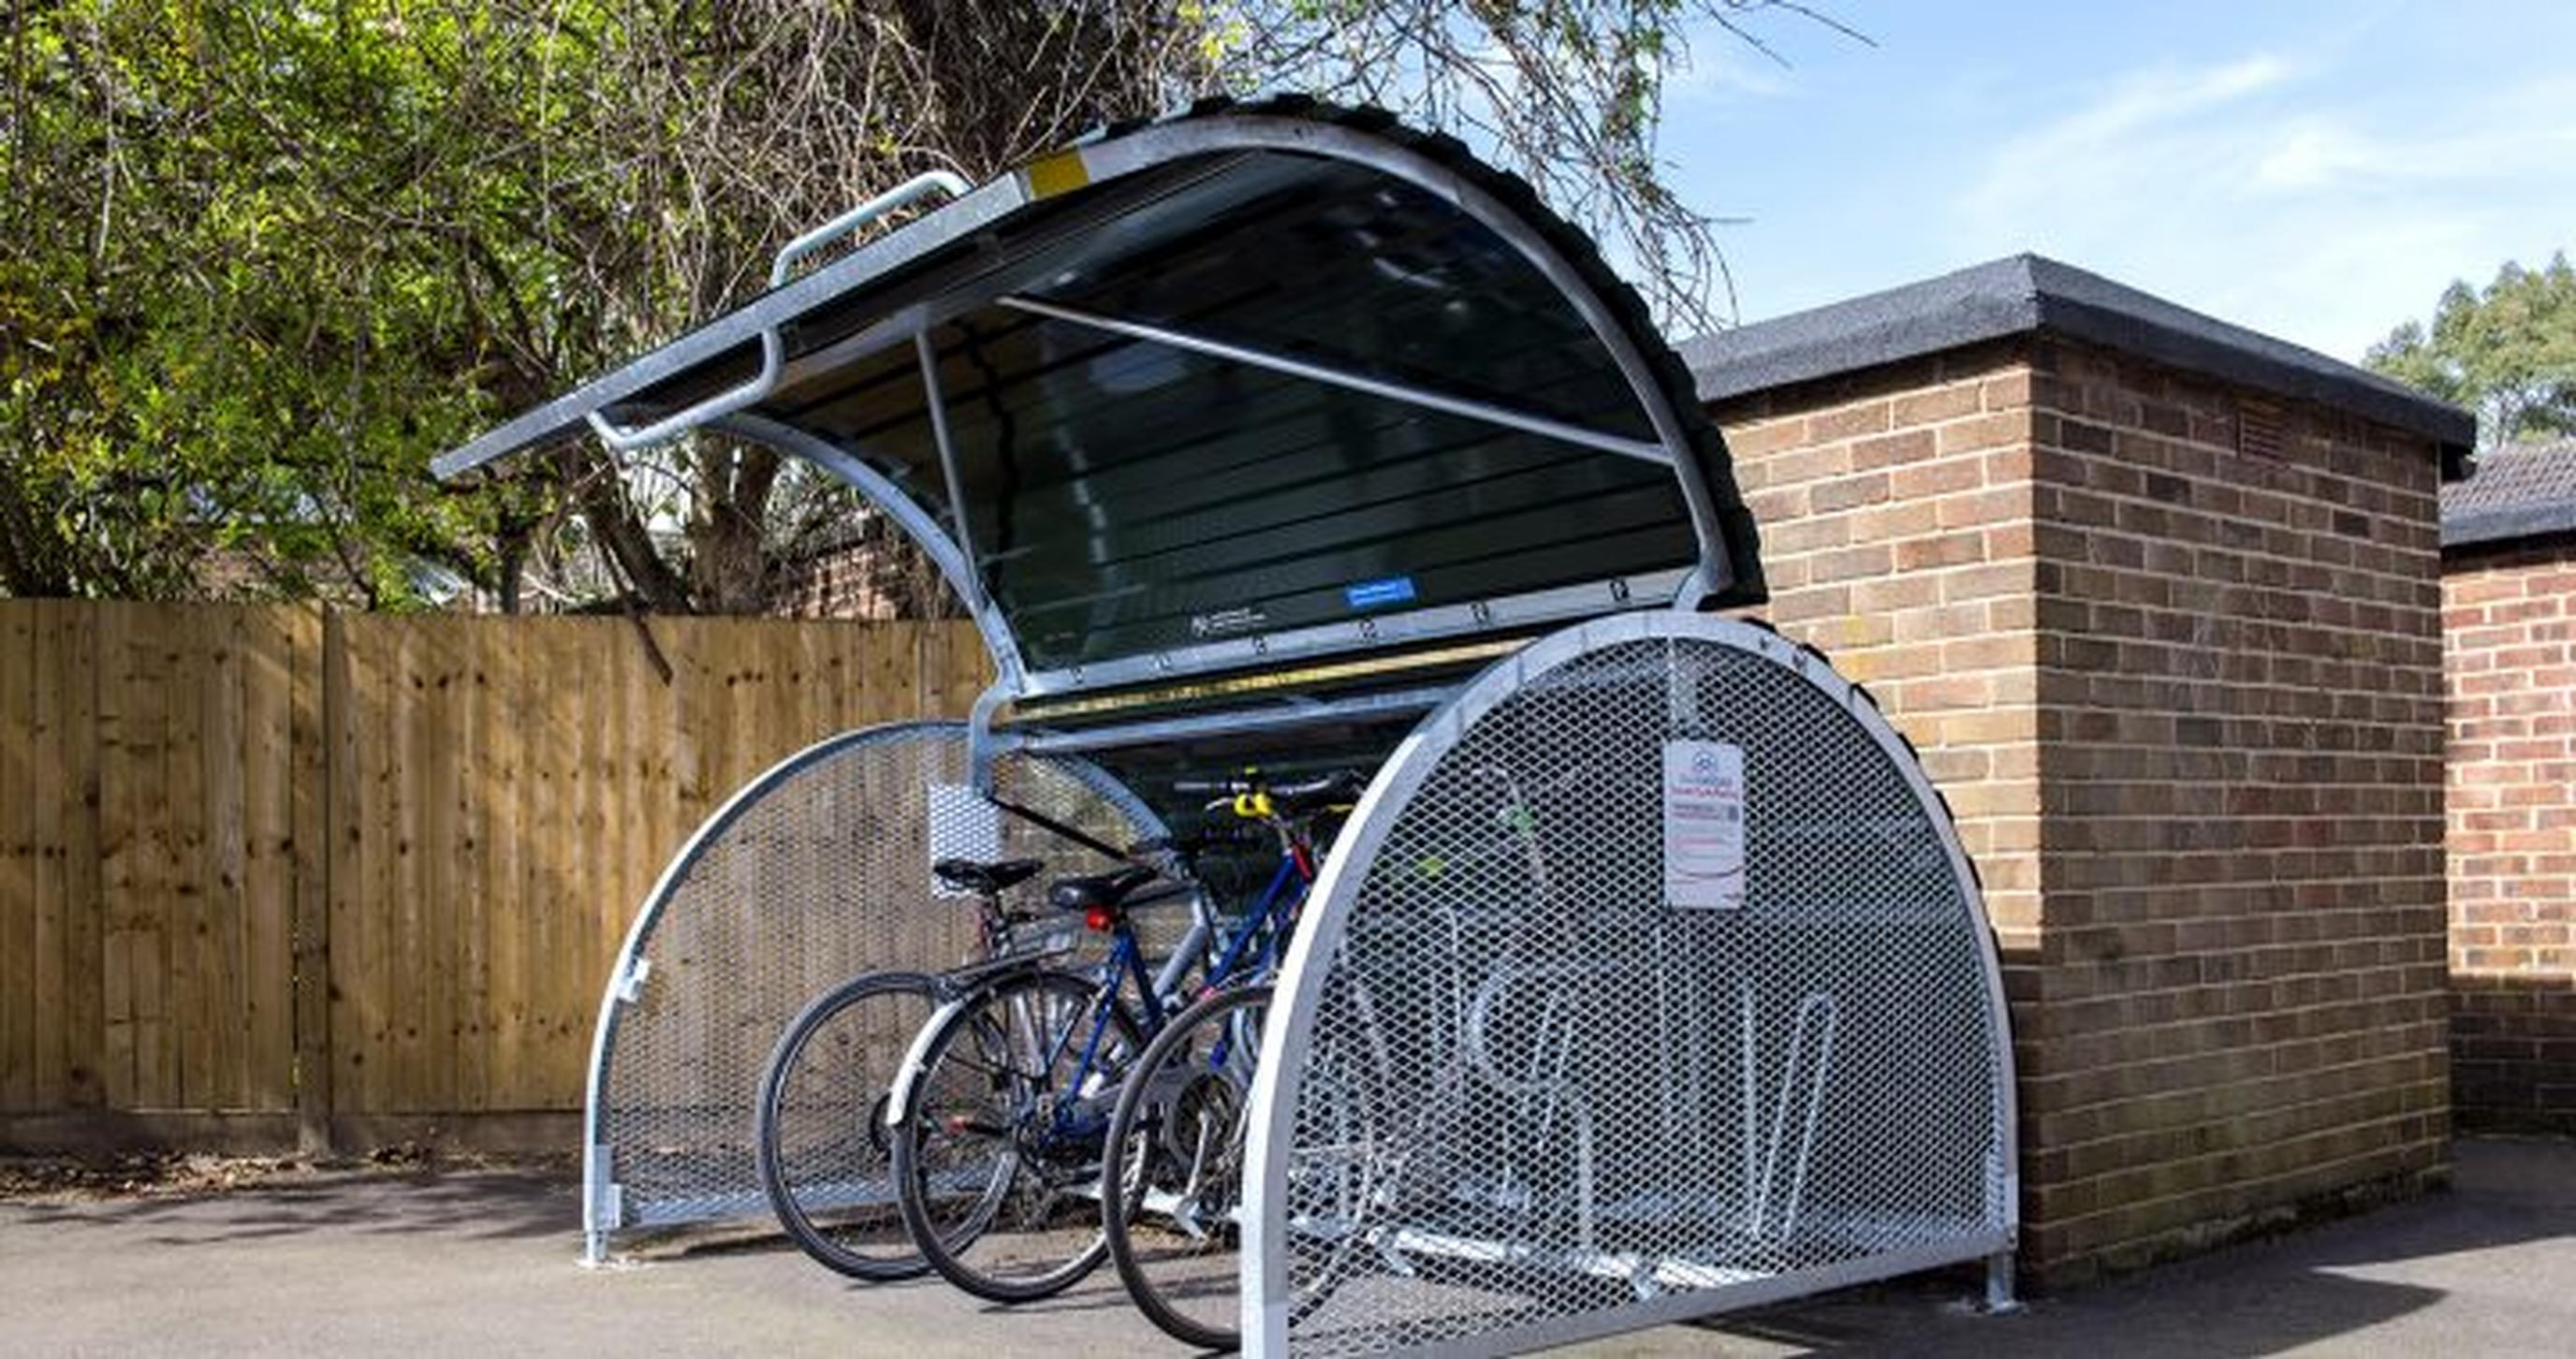 Secure bikehangar parking for Enfield